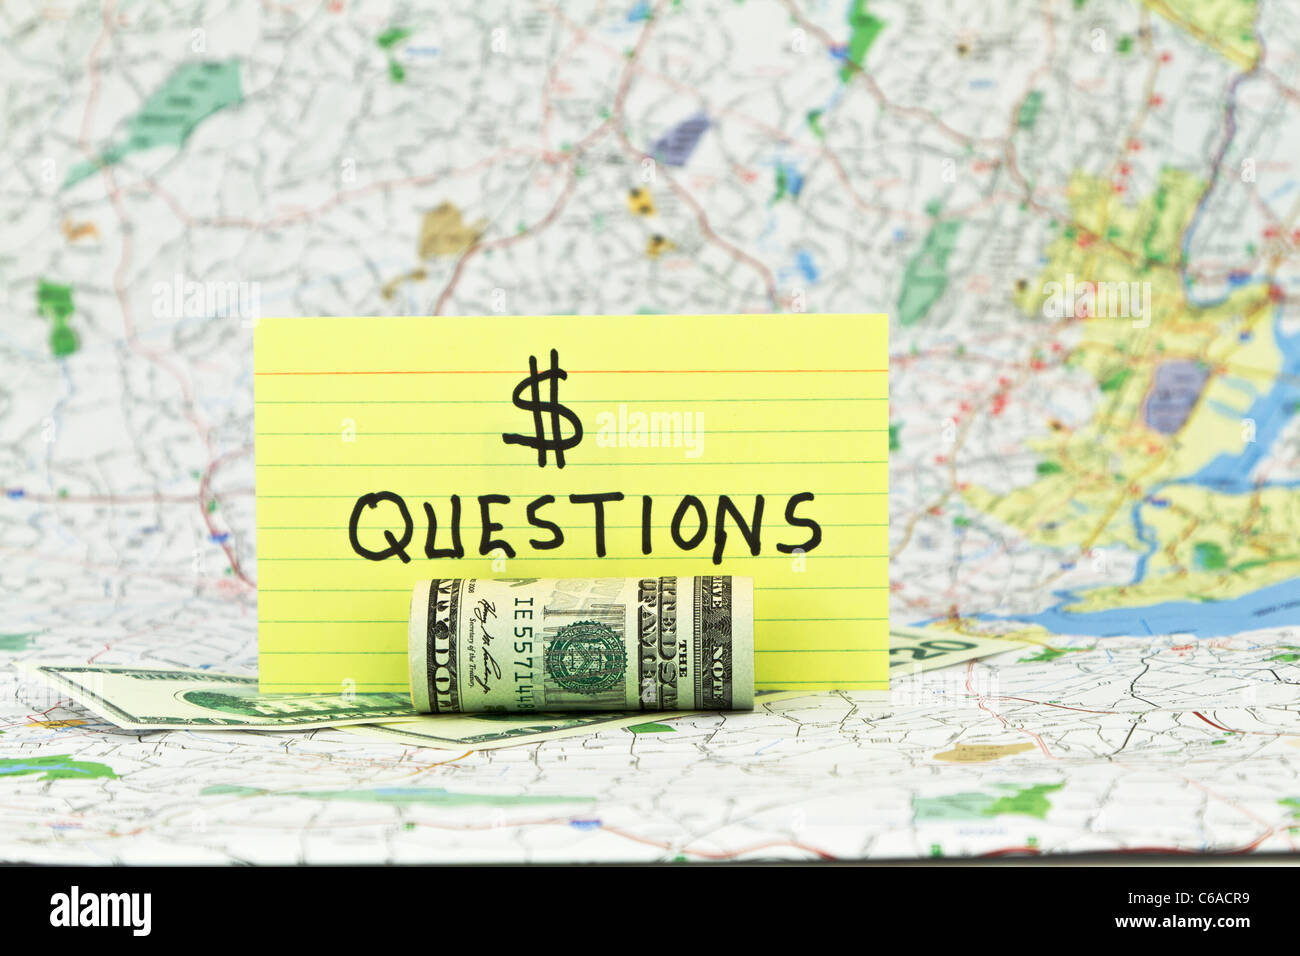 Yellow card with dollar sign and text, questions, with currency under and in front. Money questions card with map - Stock Image